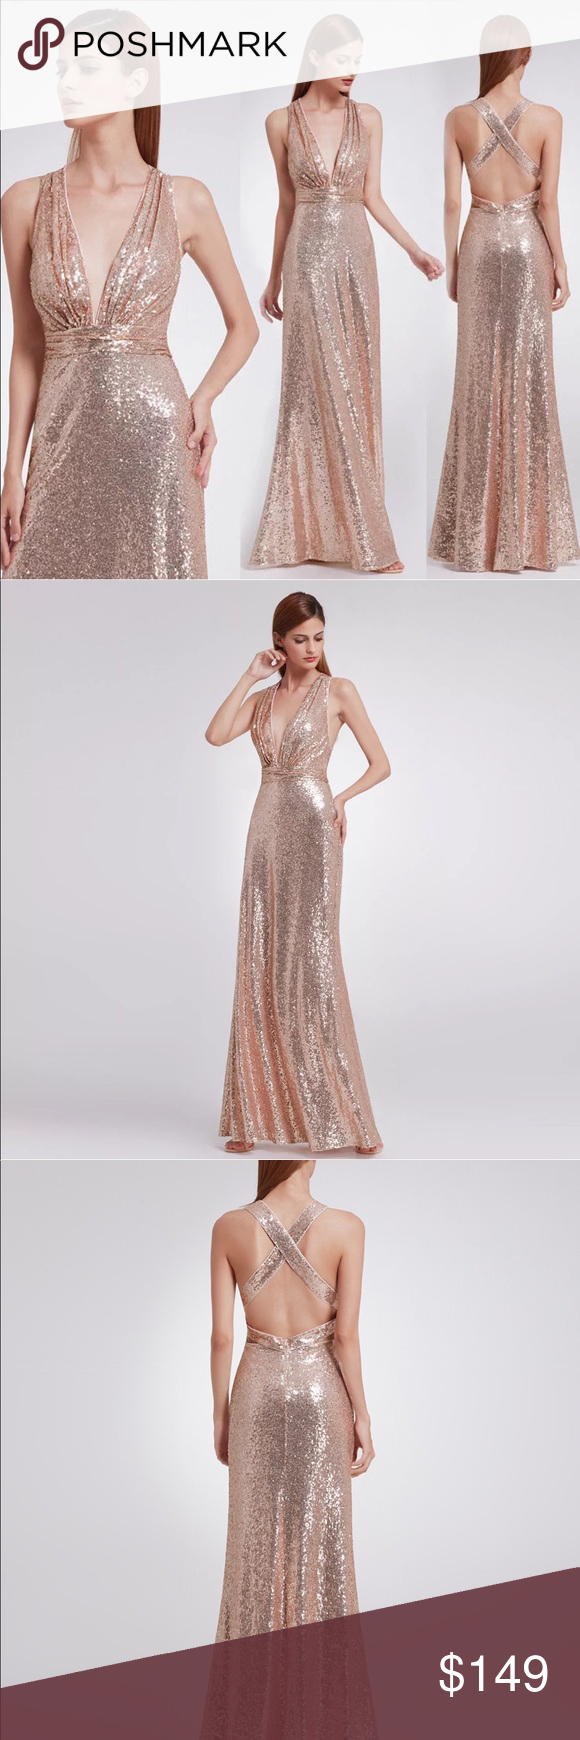 Dazzling rose gold long sequin evening prom gown boutique my posh